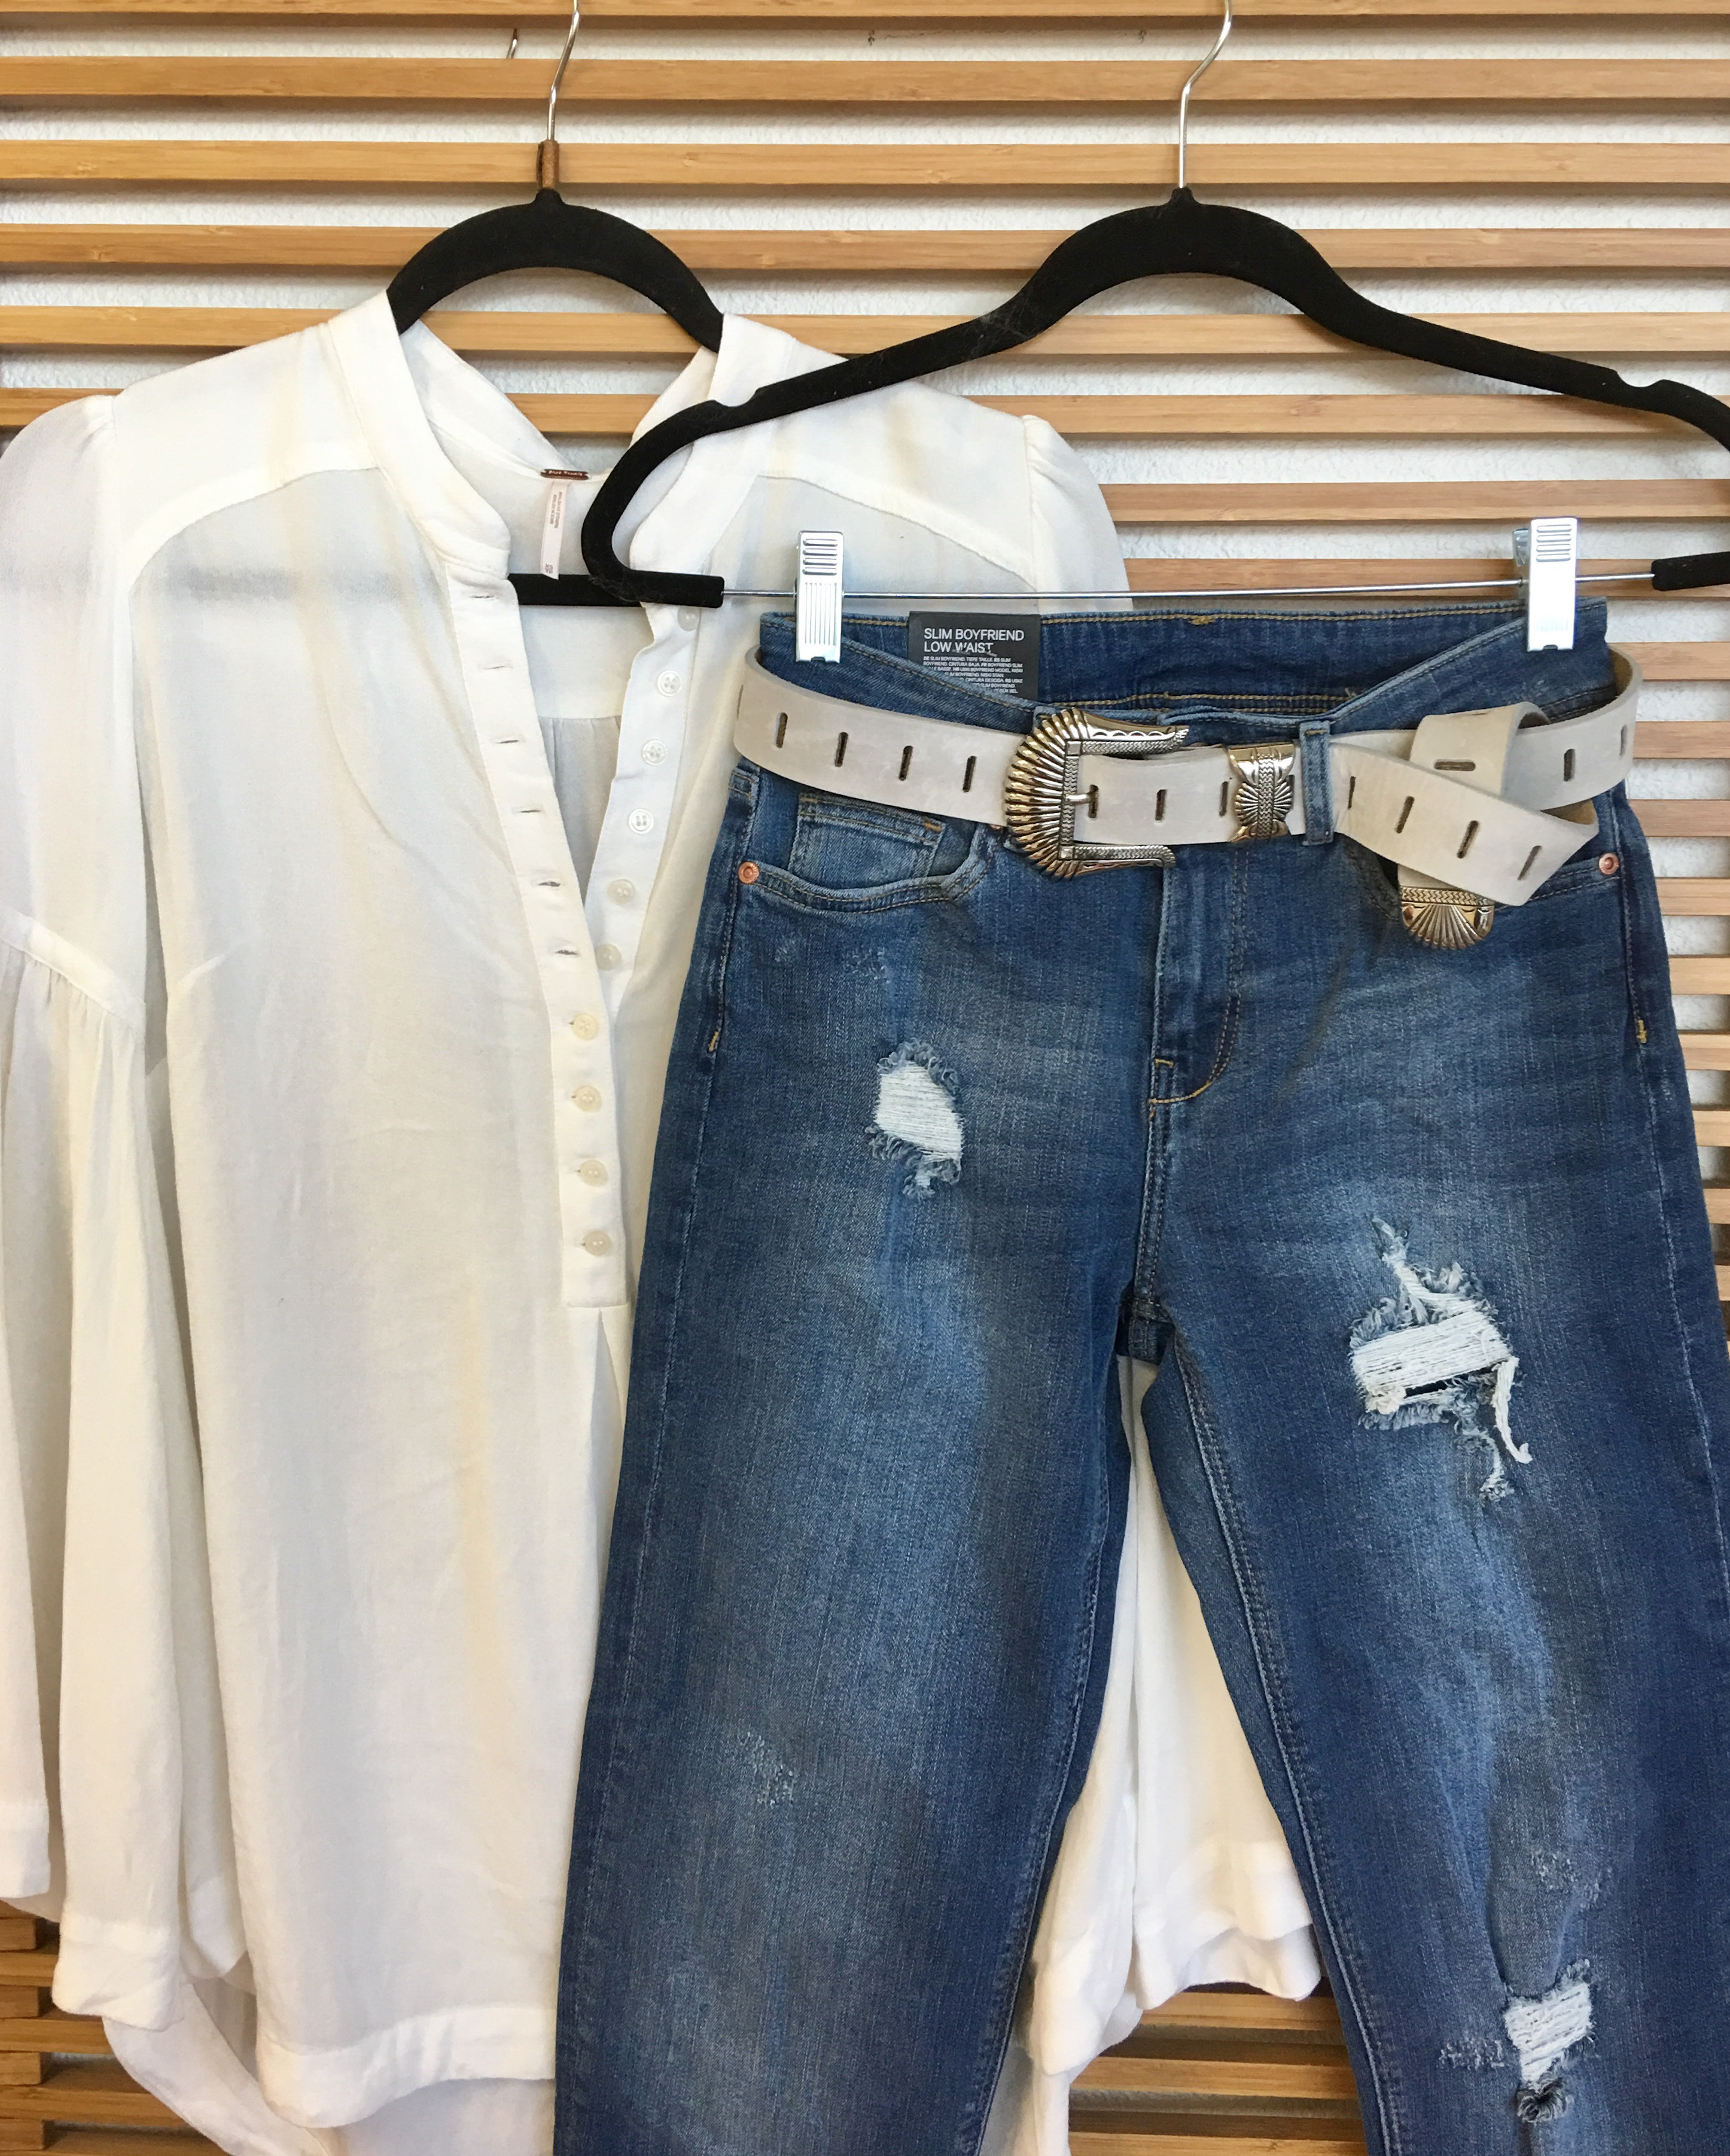 White shirt | Jeans | Belted outfit | ADA belt | ADA Blog | Genuine leather